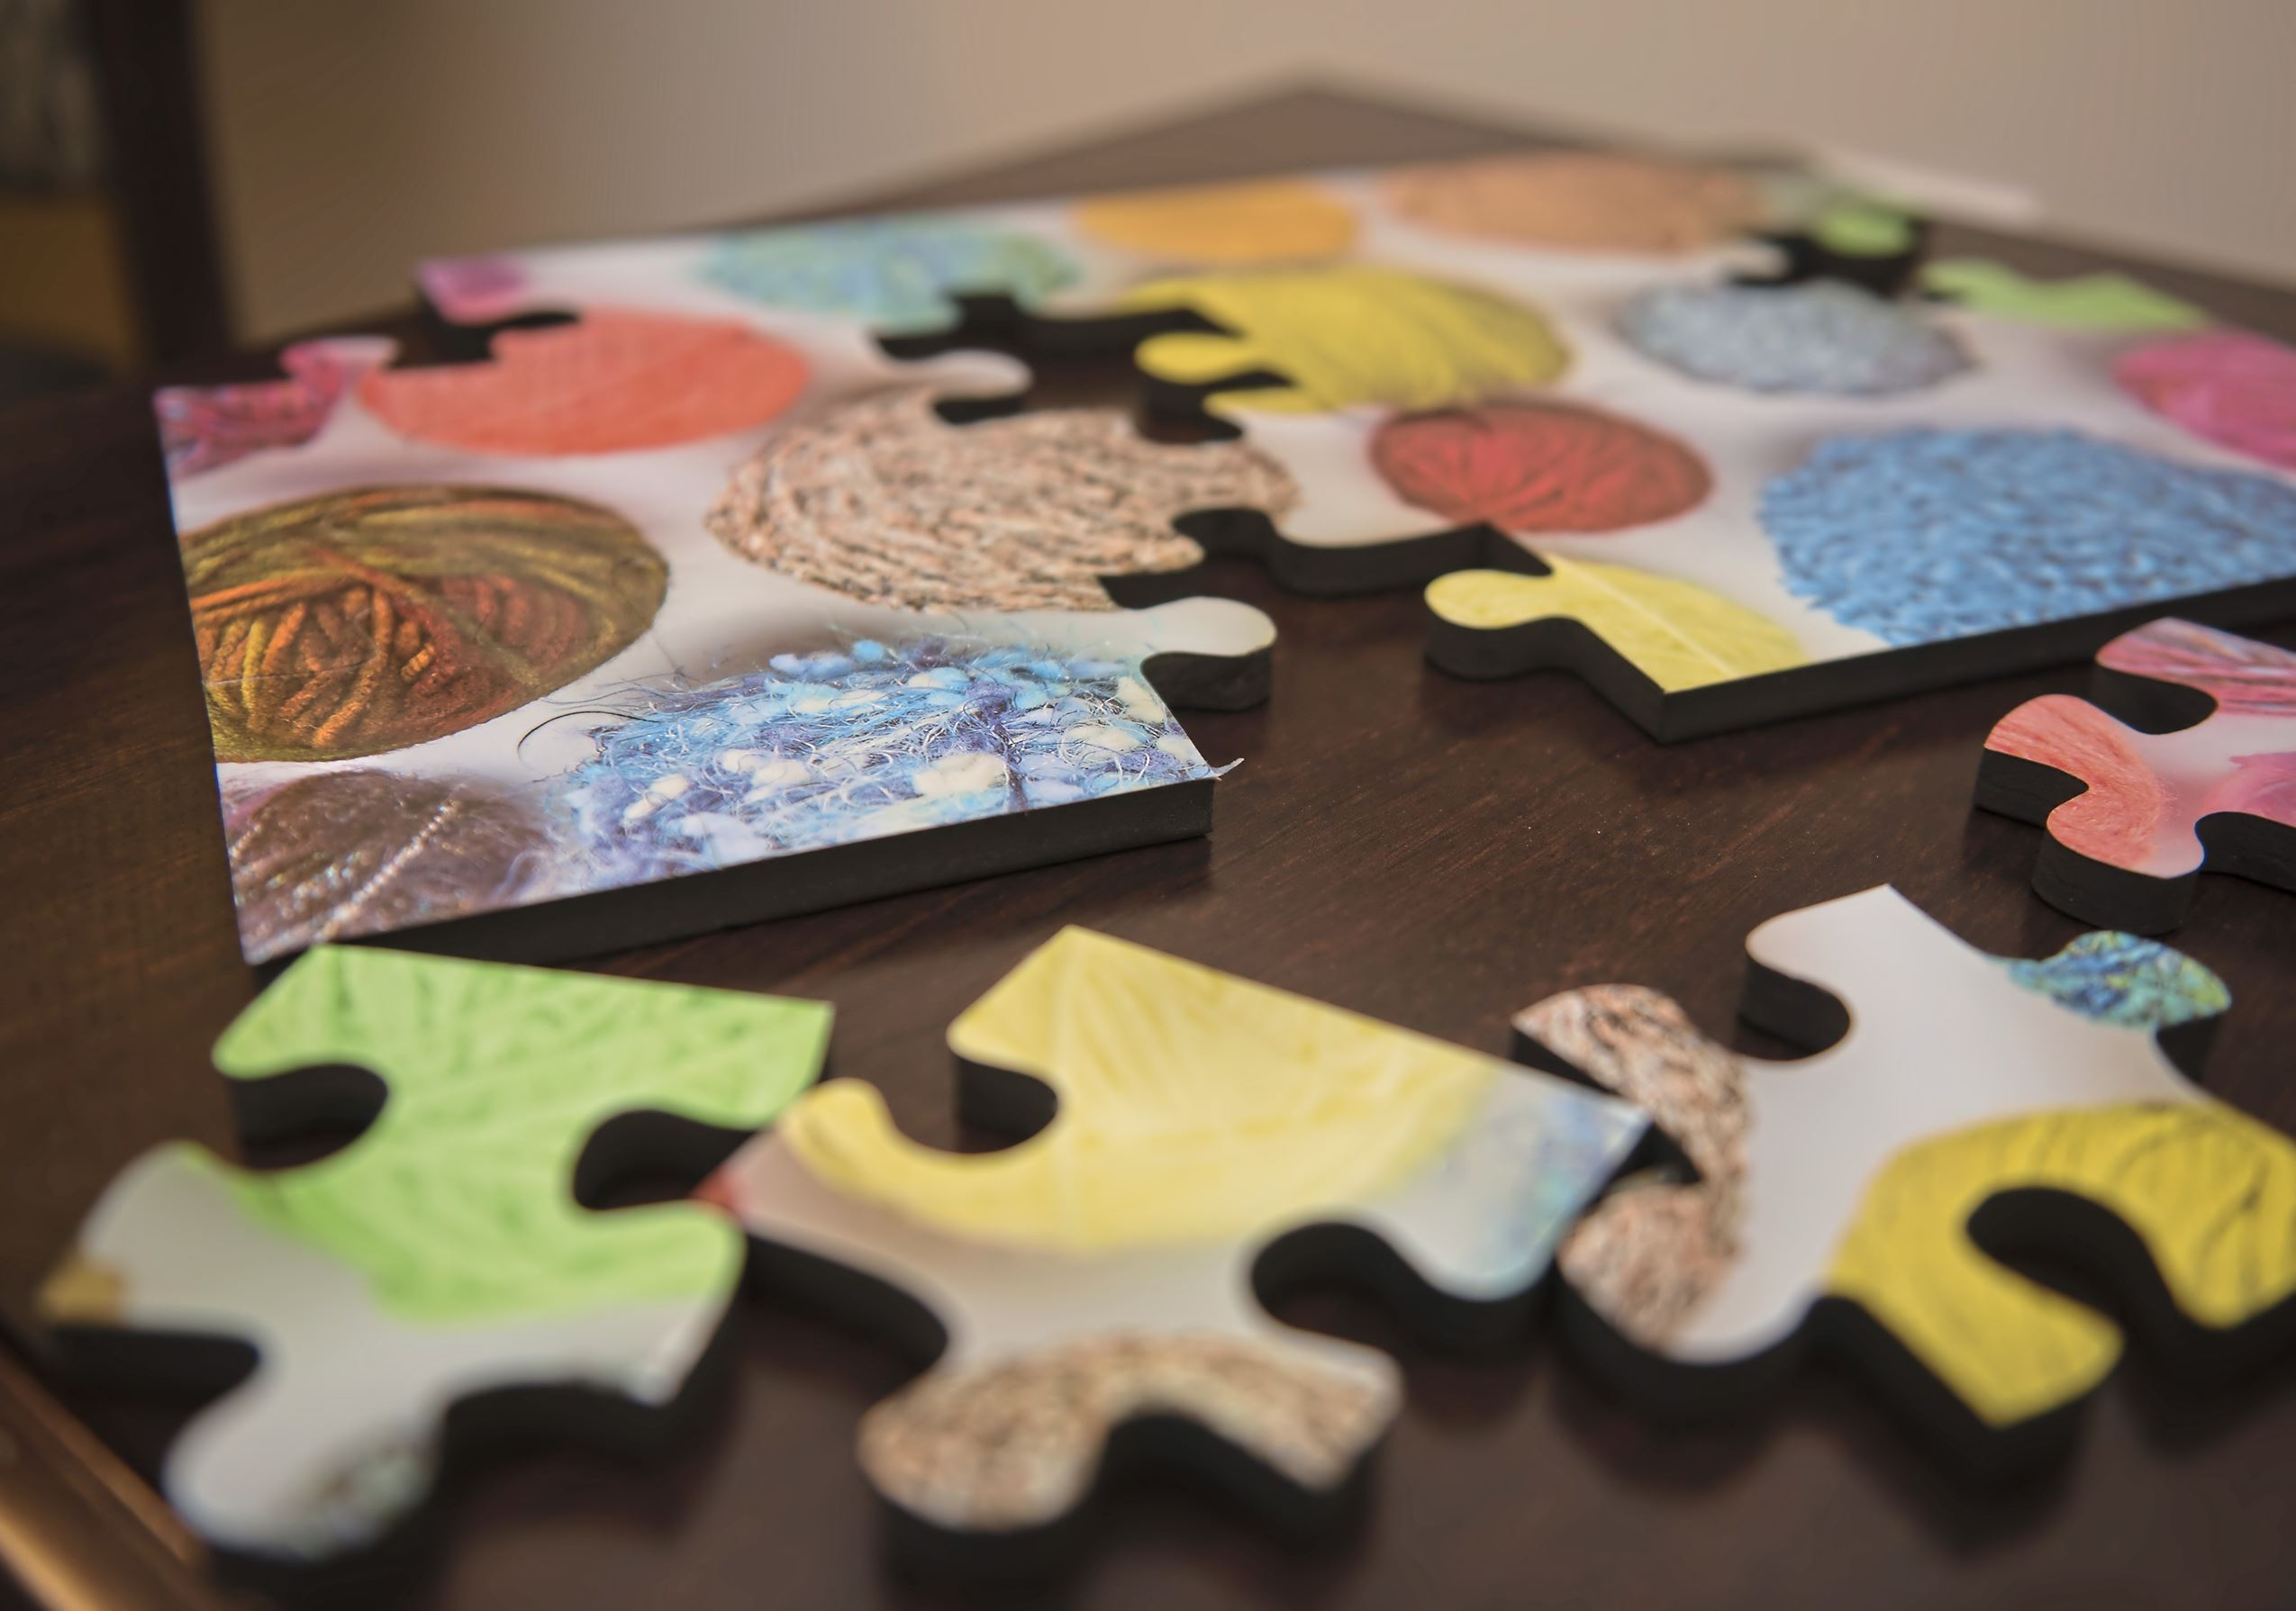 20170803hnAhava-6 A puzzle laid out for residents' use at the AHAVA Memory Care Residence at The Jewish Association on Aging.